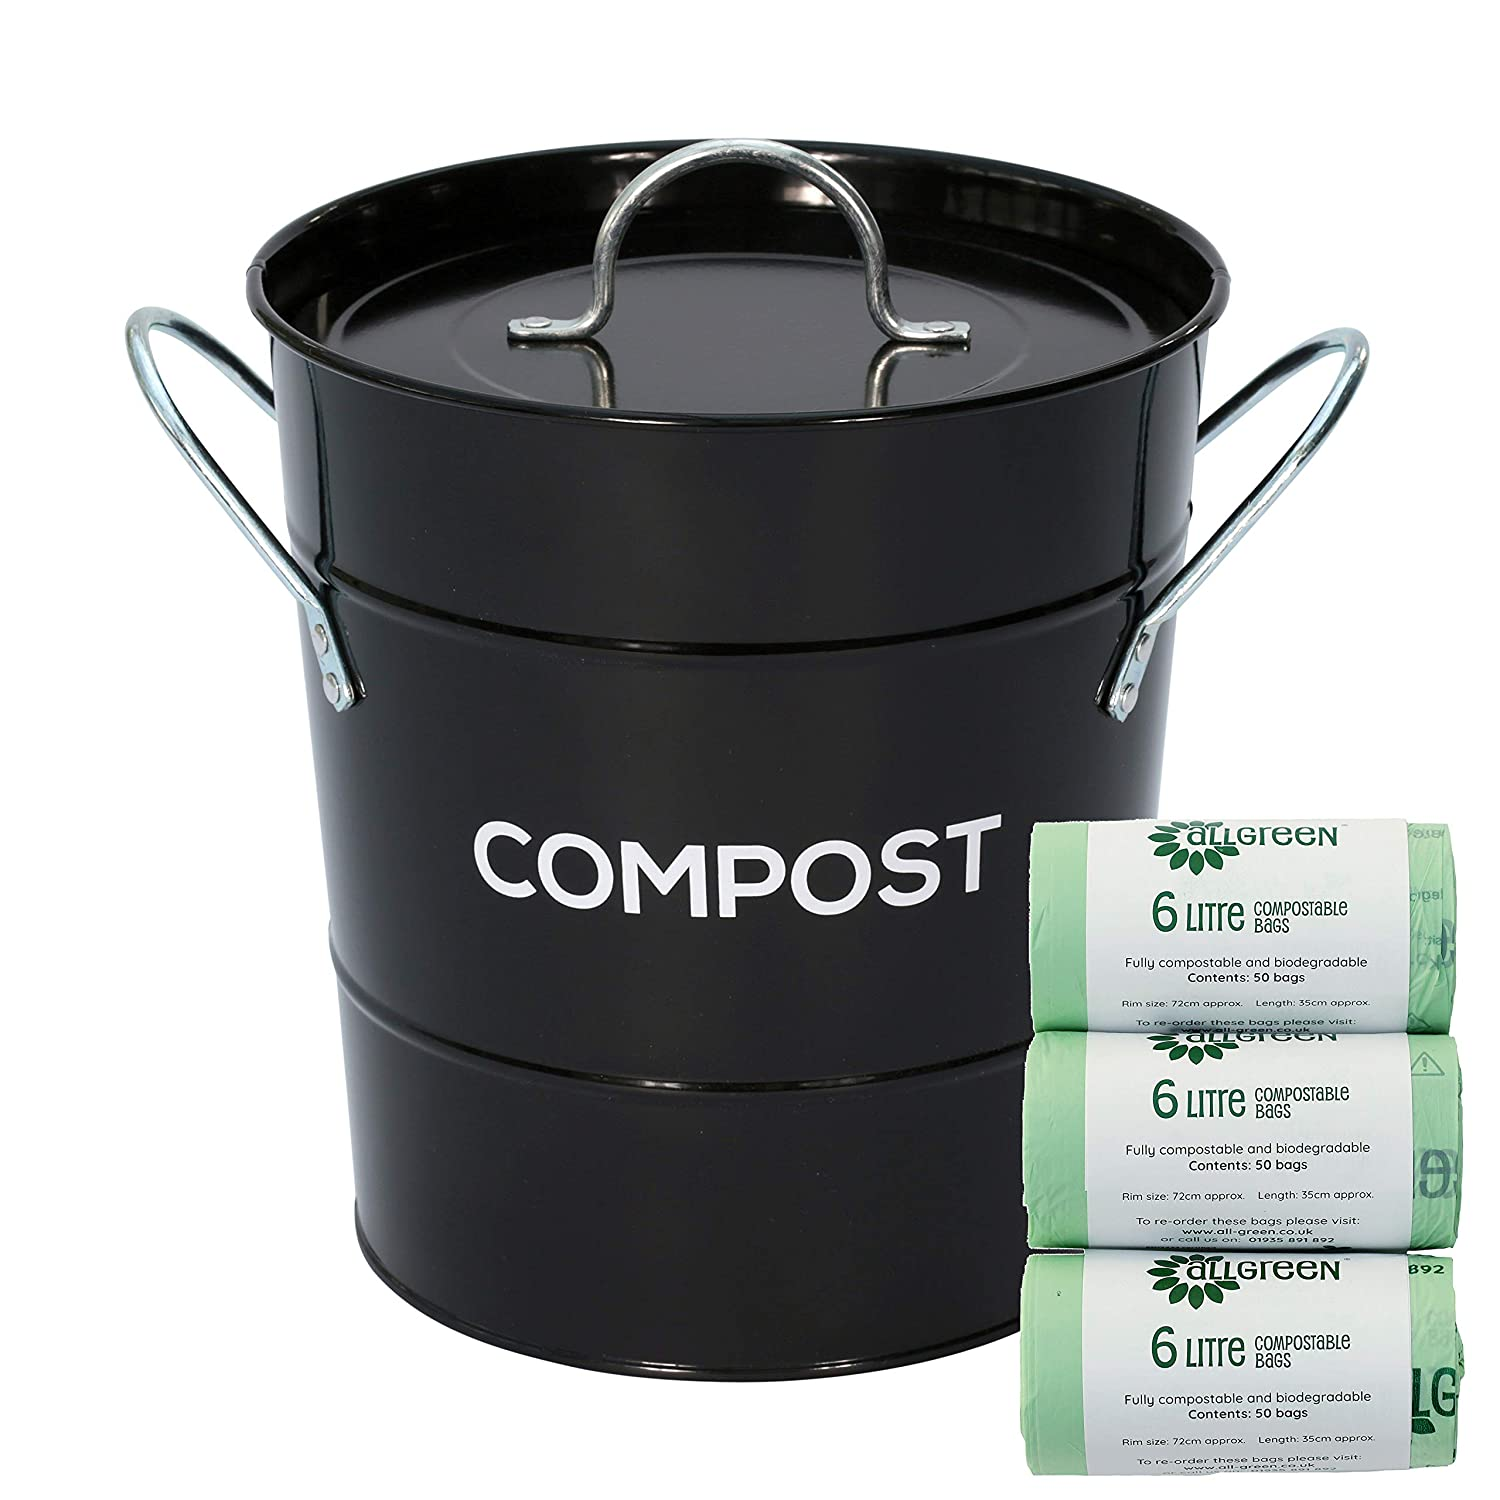 Black Metal Kitchen Compost Caddy & 150x 6L All-Green Biobags - Composting Bin for Food Waste Recycling The Caddy Company